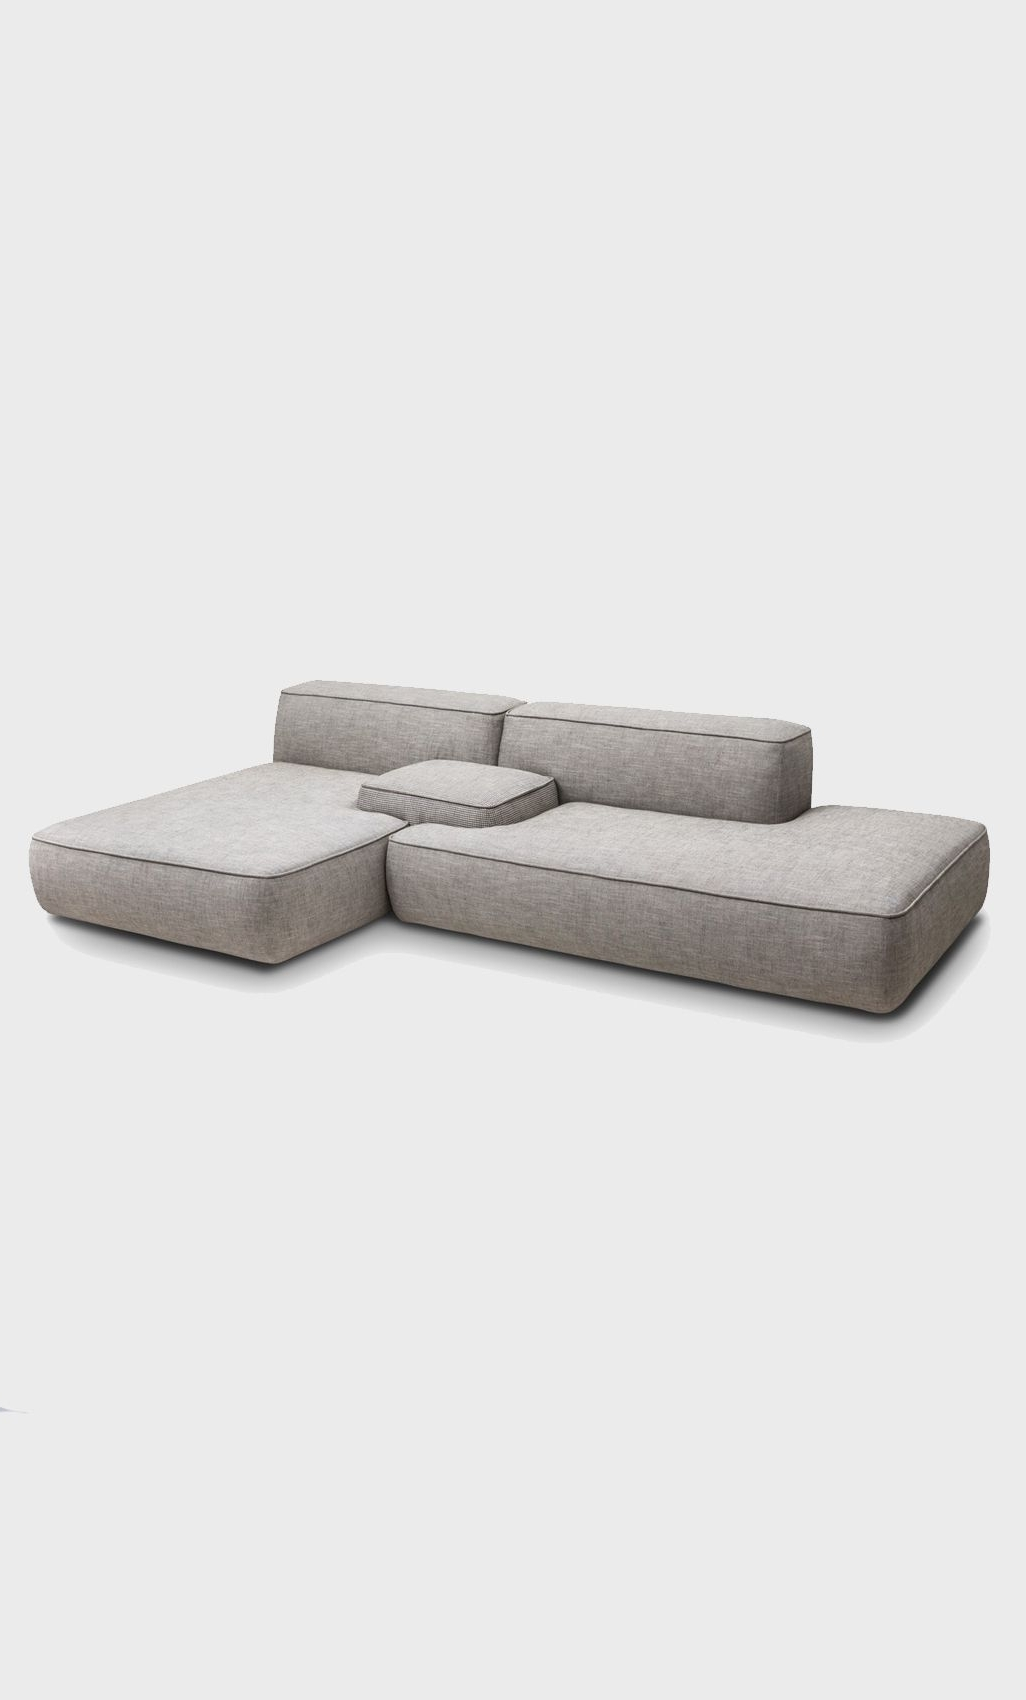 Furniture 2 Regarding Small Modular Sofas (Gallery 19 of 20)